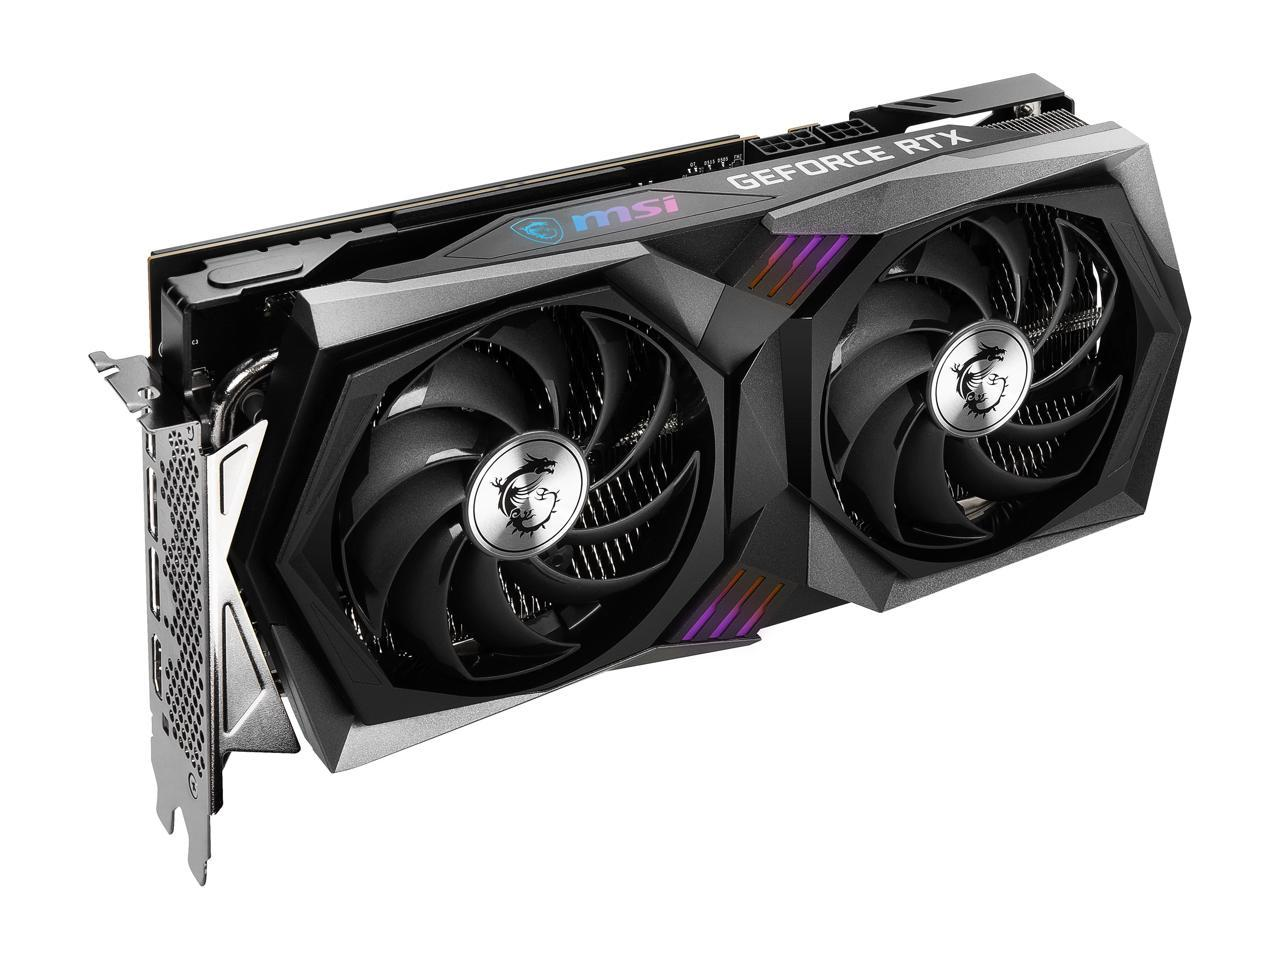 MSI GeForce RTX 3060 DirectX 12 Ultimate RTX 3060 Gaming X  + ASUS TUF Z390 PLUS Gaming  + EVGA 550W PSU BUNDLE IN STOCK